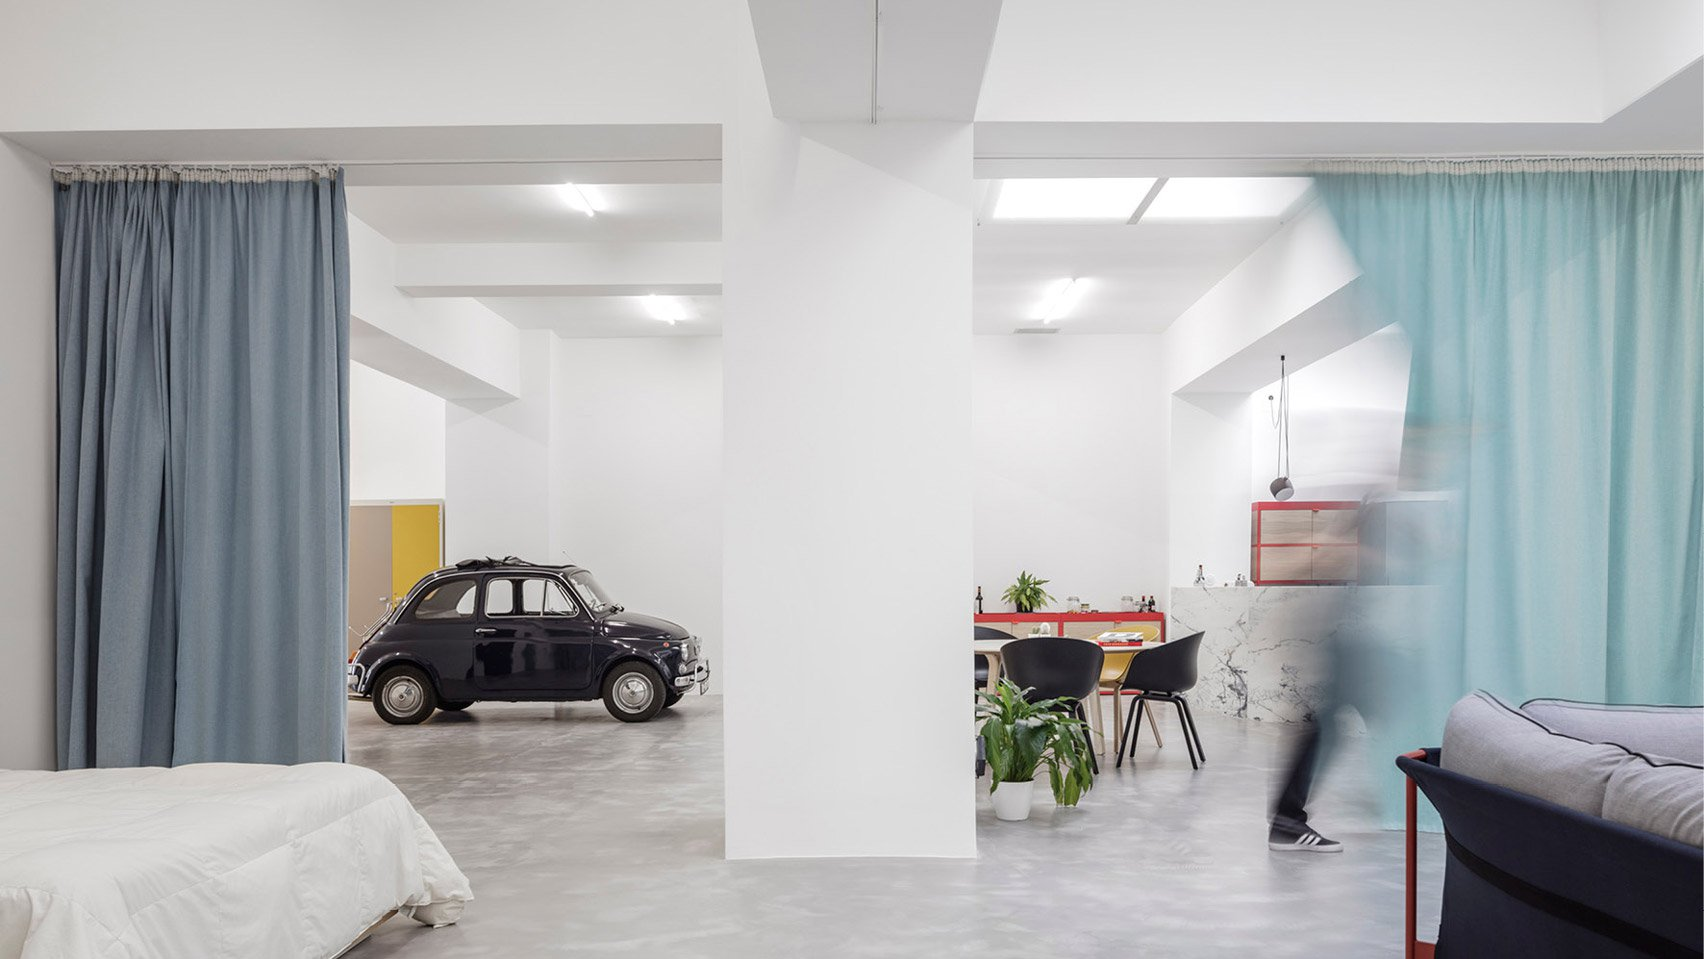 Design News: Portuguese Studio Fala Atelier Transforms Garage into Stunning Home design news Design News: Studio Fala Atelier Transforms Garage into Stunning Home Design News Portuguese Studio Fala Atelier Transforms Garage into Stunning Home